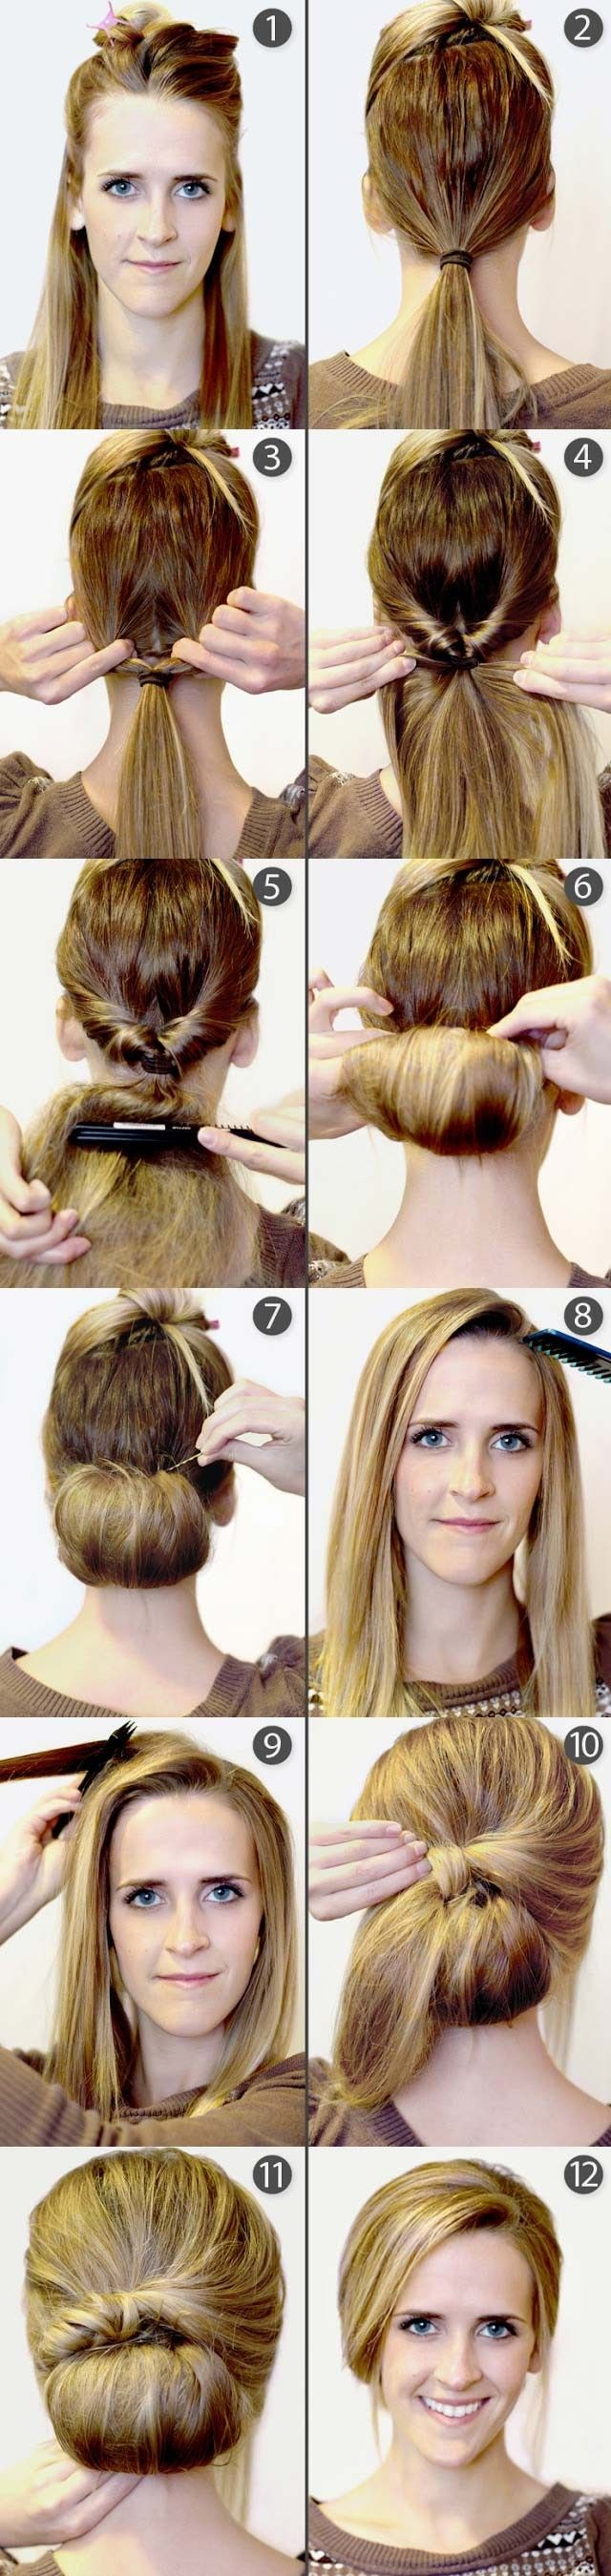 15 Cute hairstyles: Step-by-Step Hairstyles for Long Hair recommend